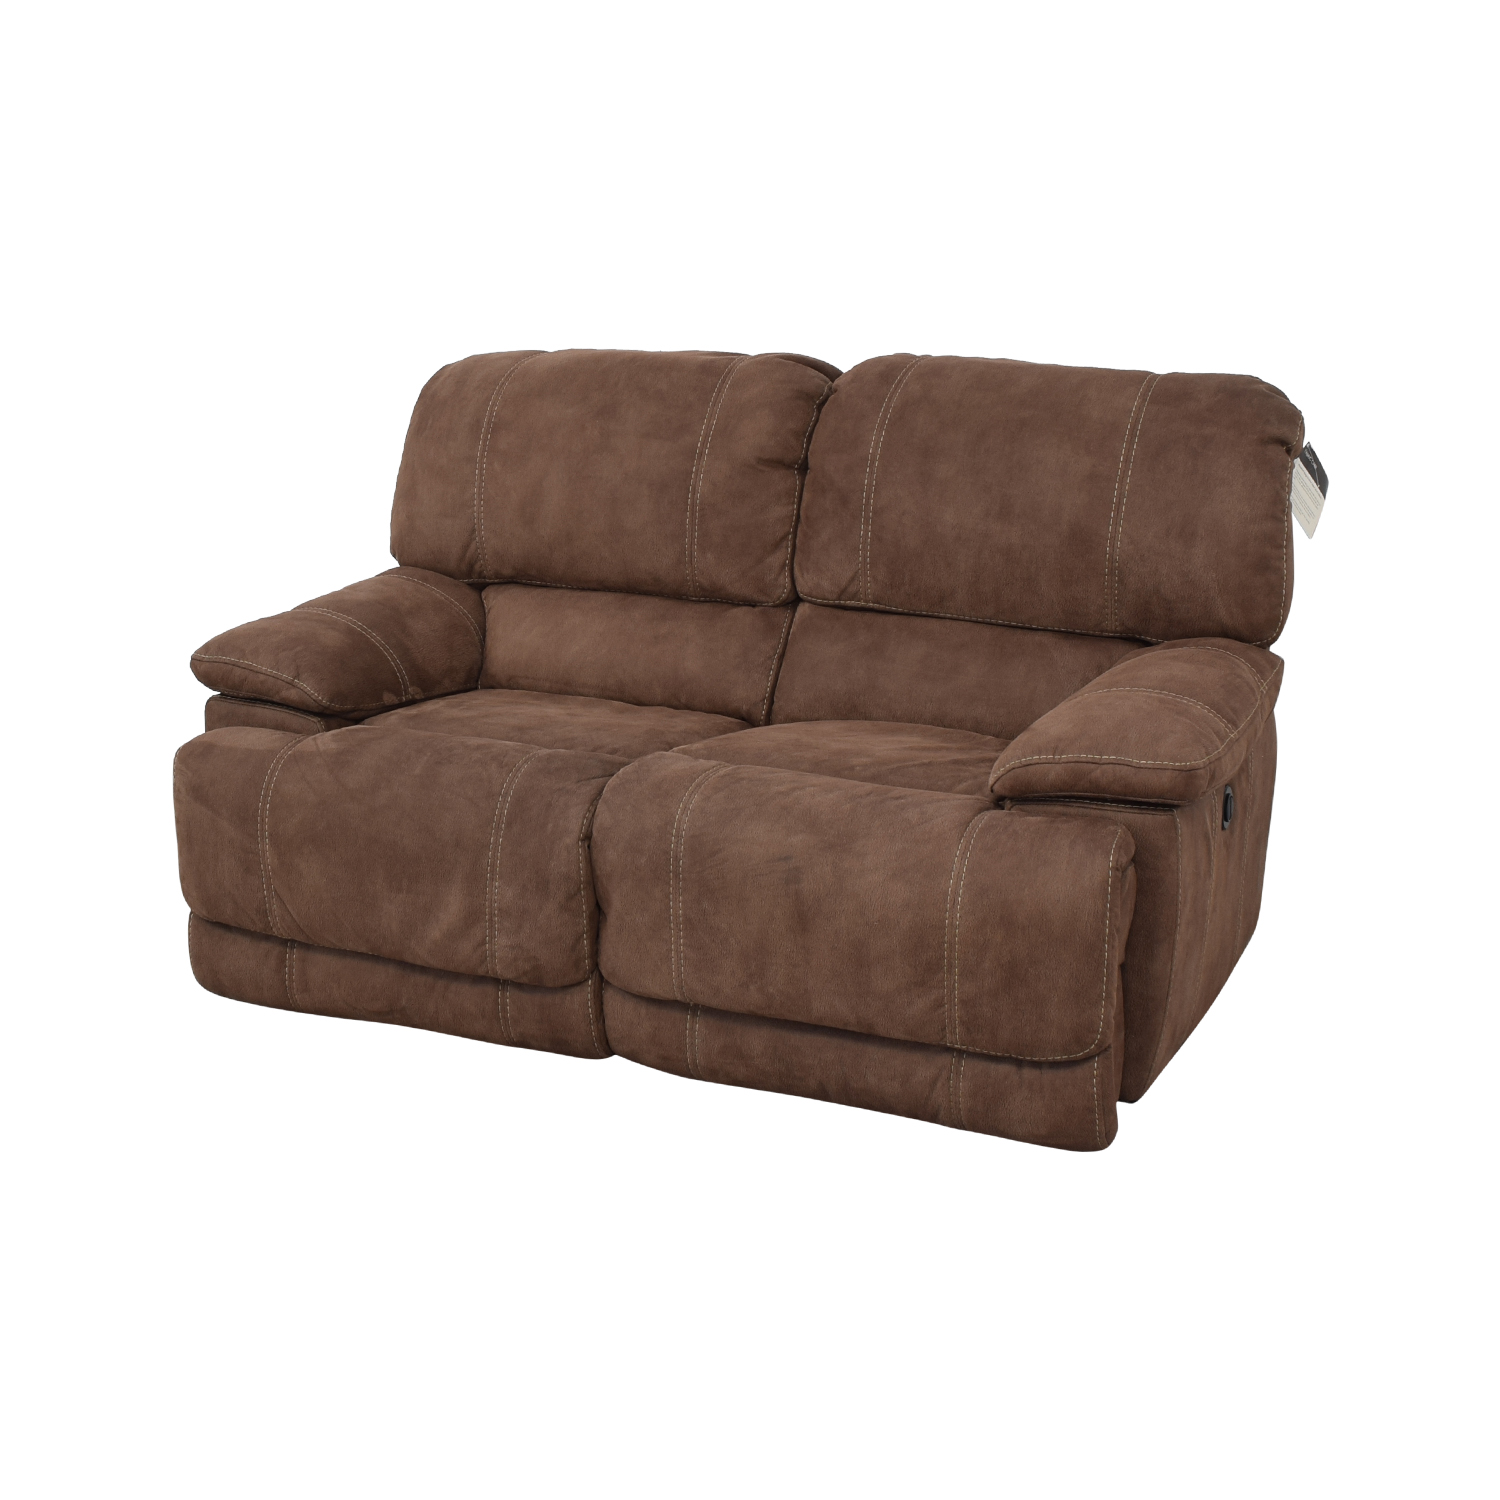 79 Off Macy S Recliner Loveseat Sofa Chairs